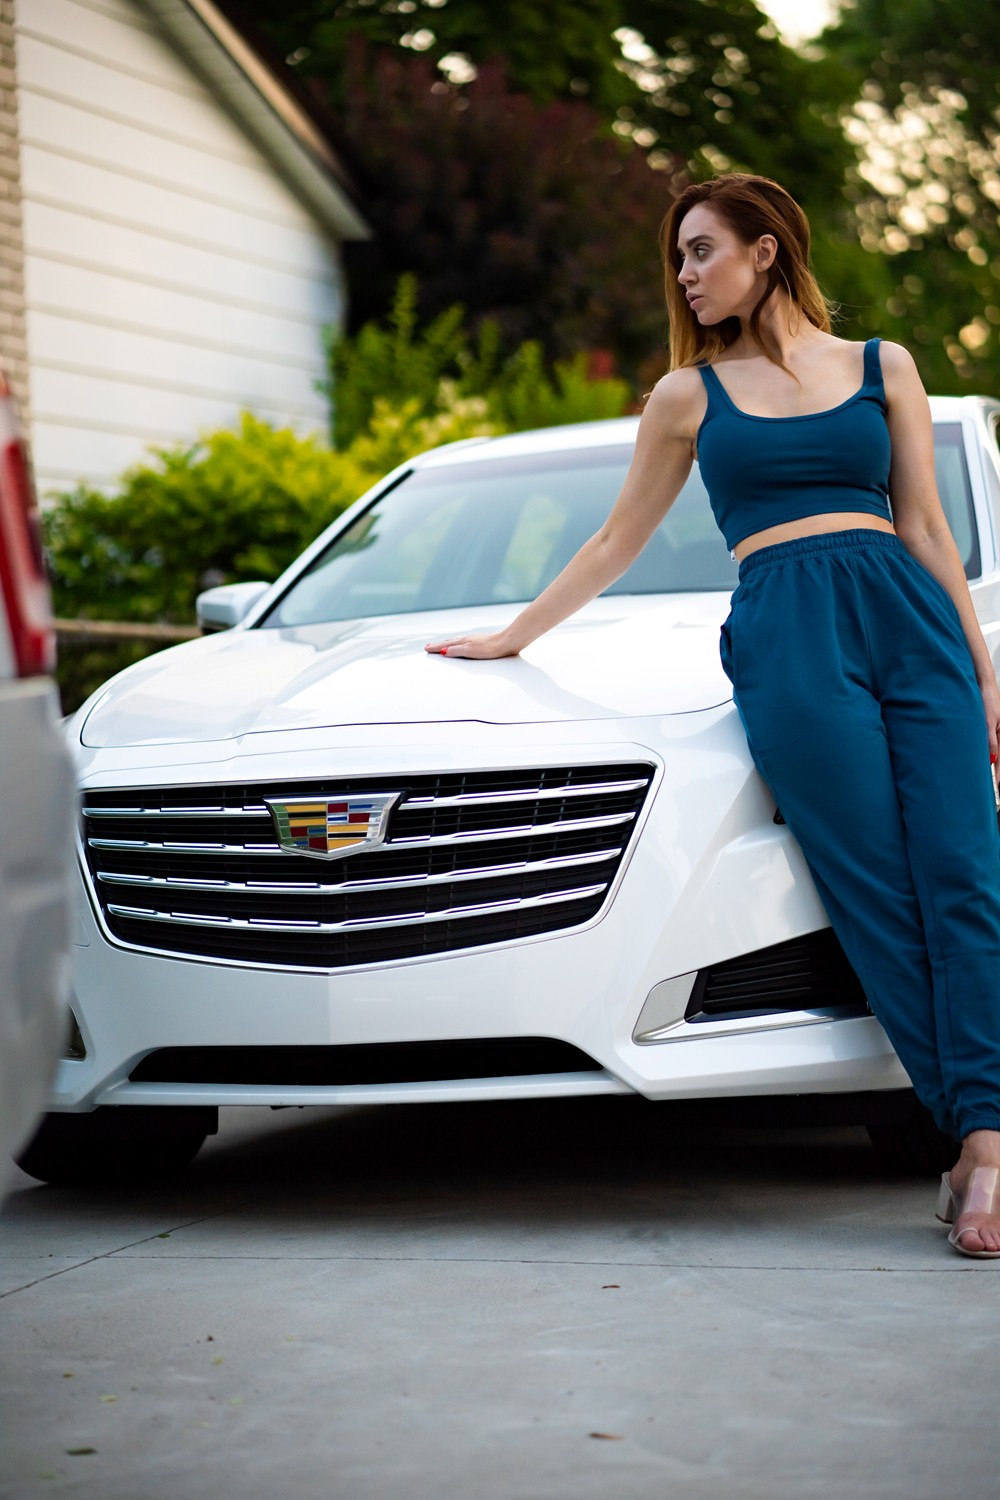 Milito's Auto Repair Expertly Services & Inspects All Cadillacs Right in Lincoln Park Chicago 60614